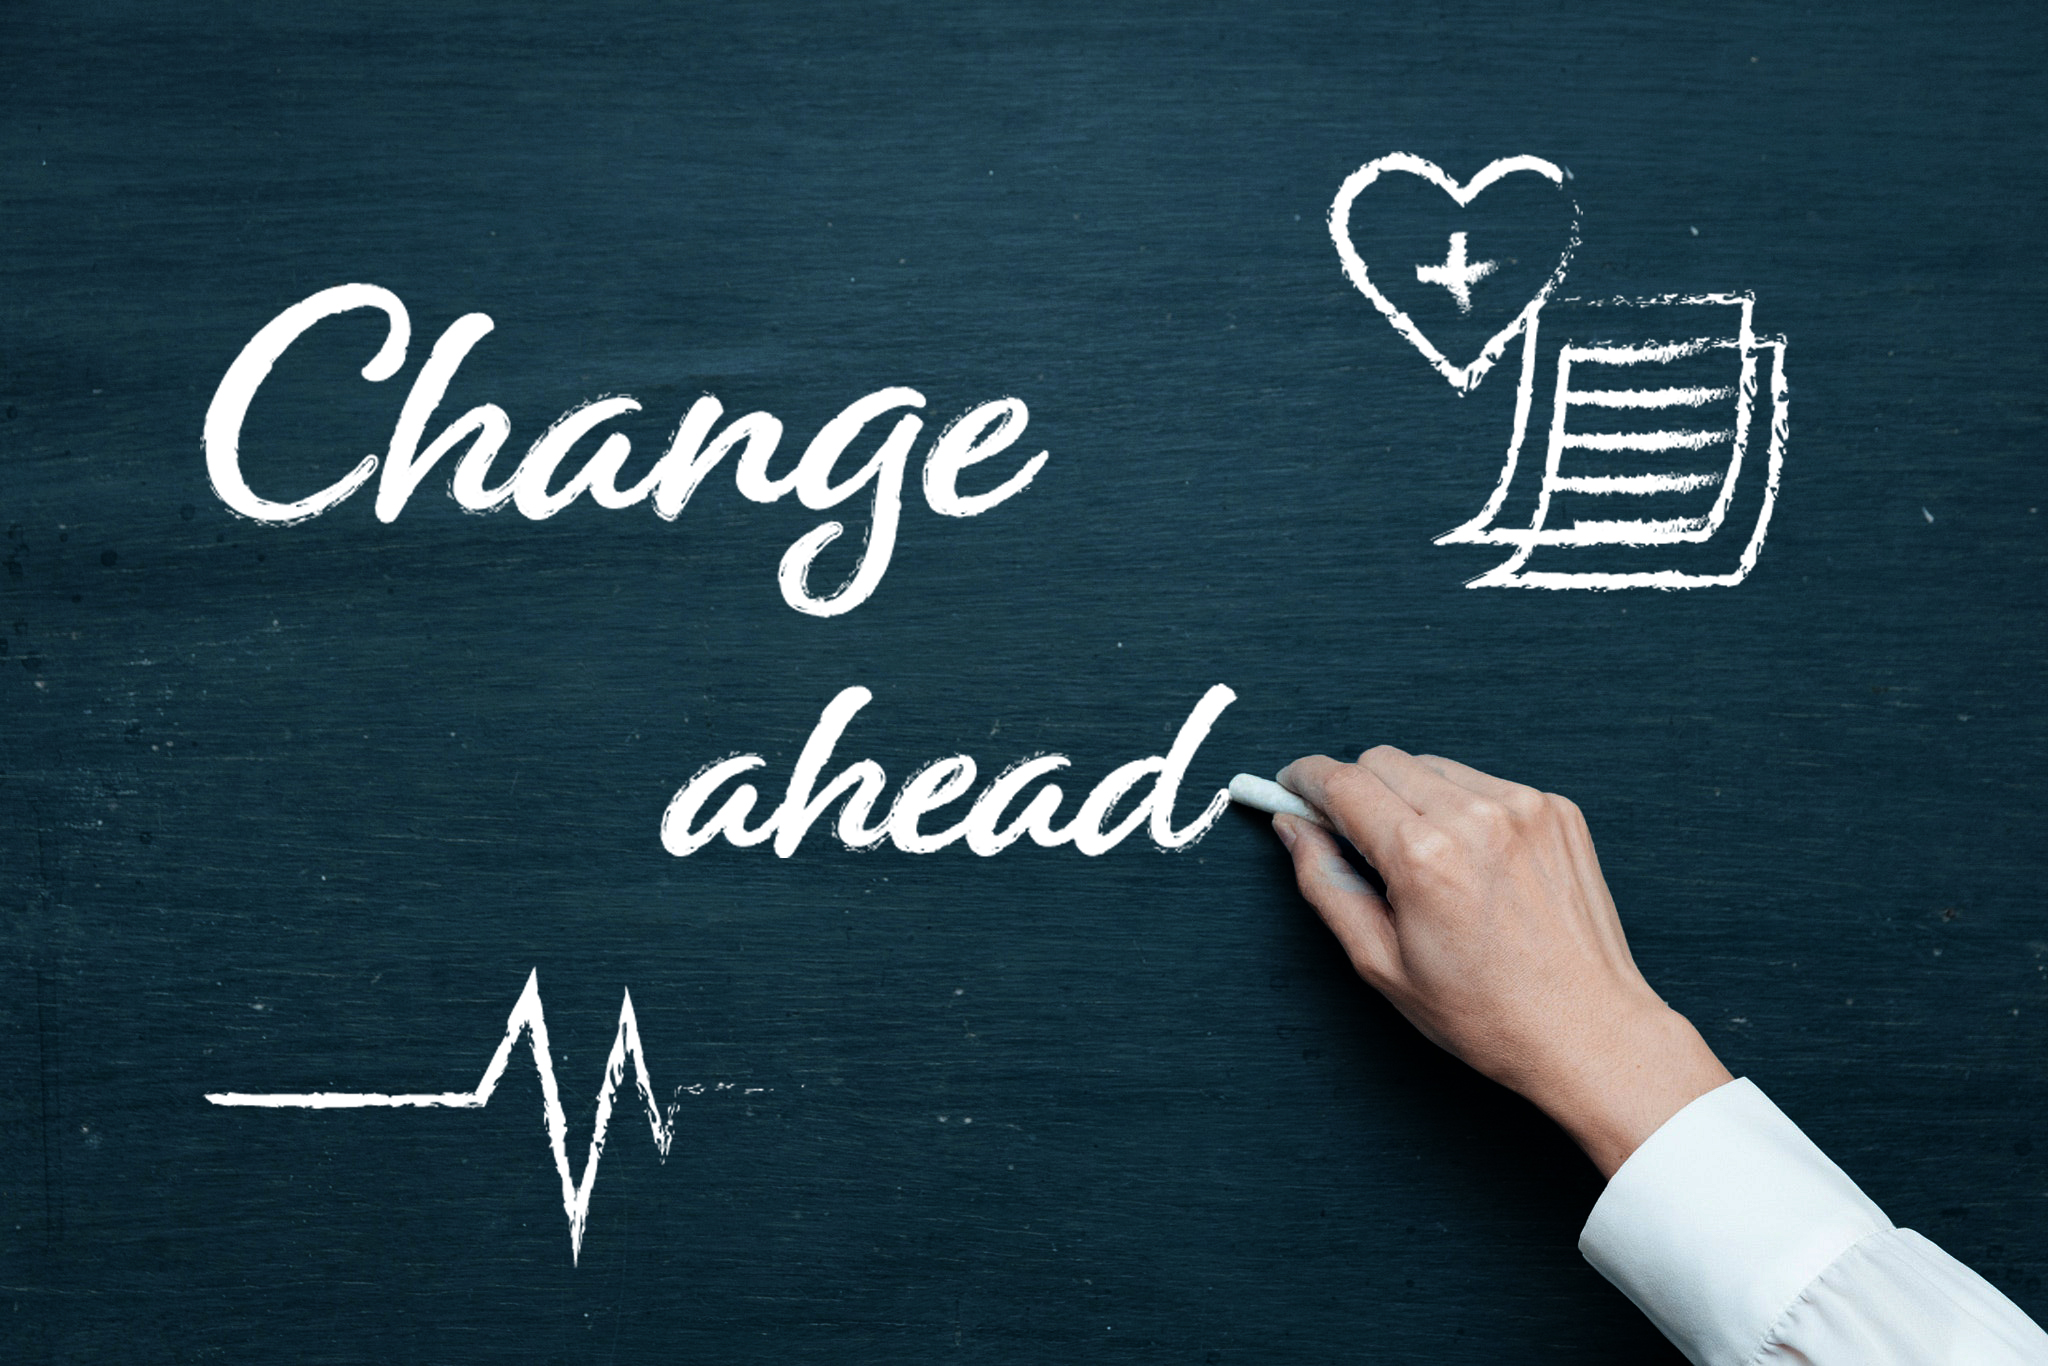 Graphic showing a person's hand writing the phrase Change Ahead on a blackboard.